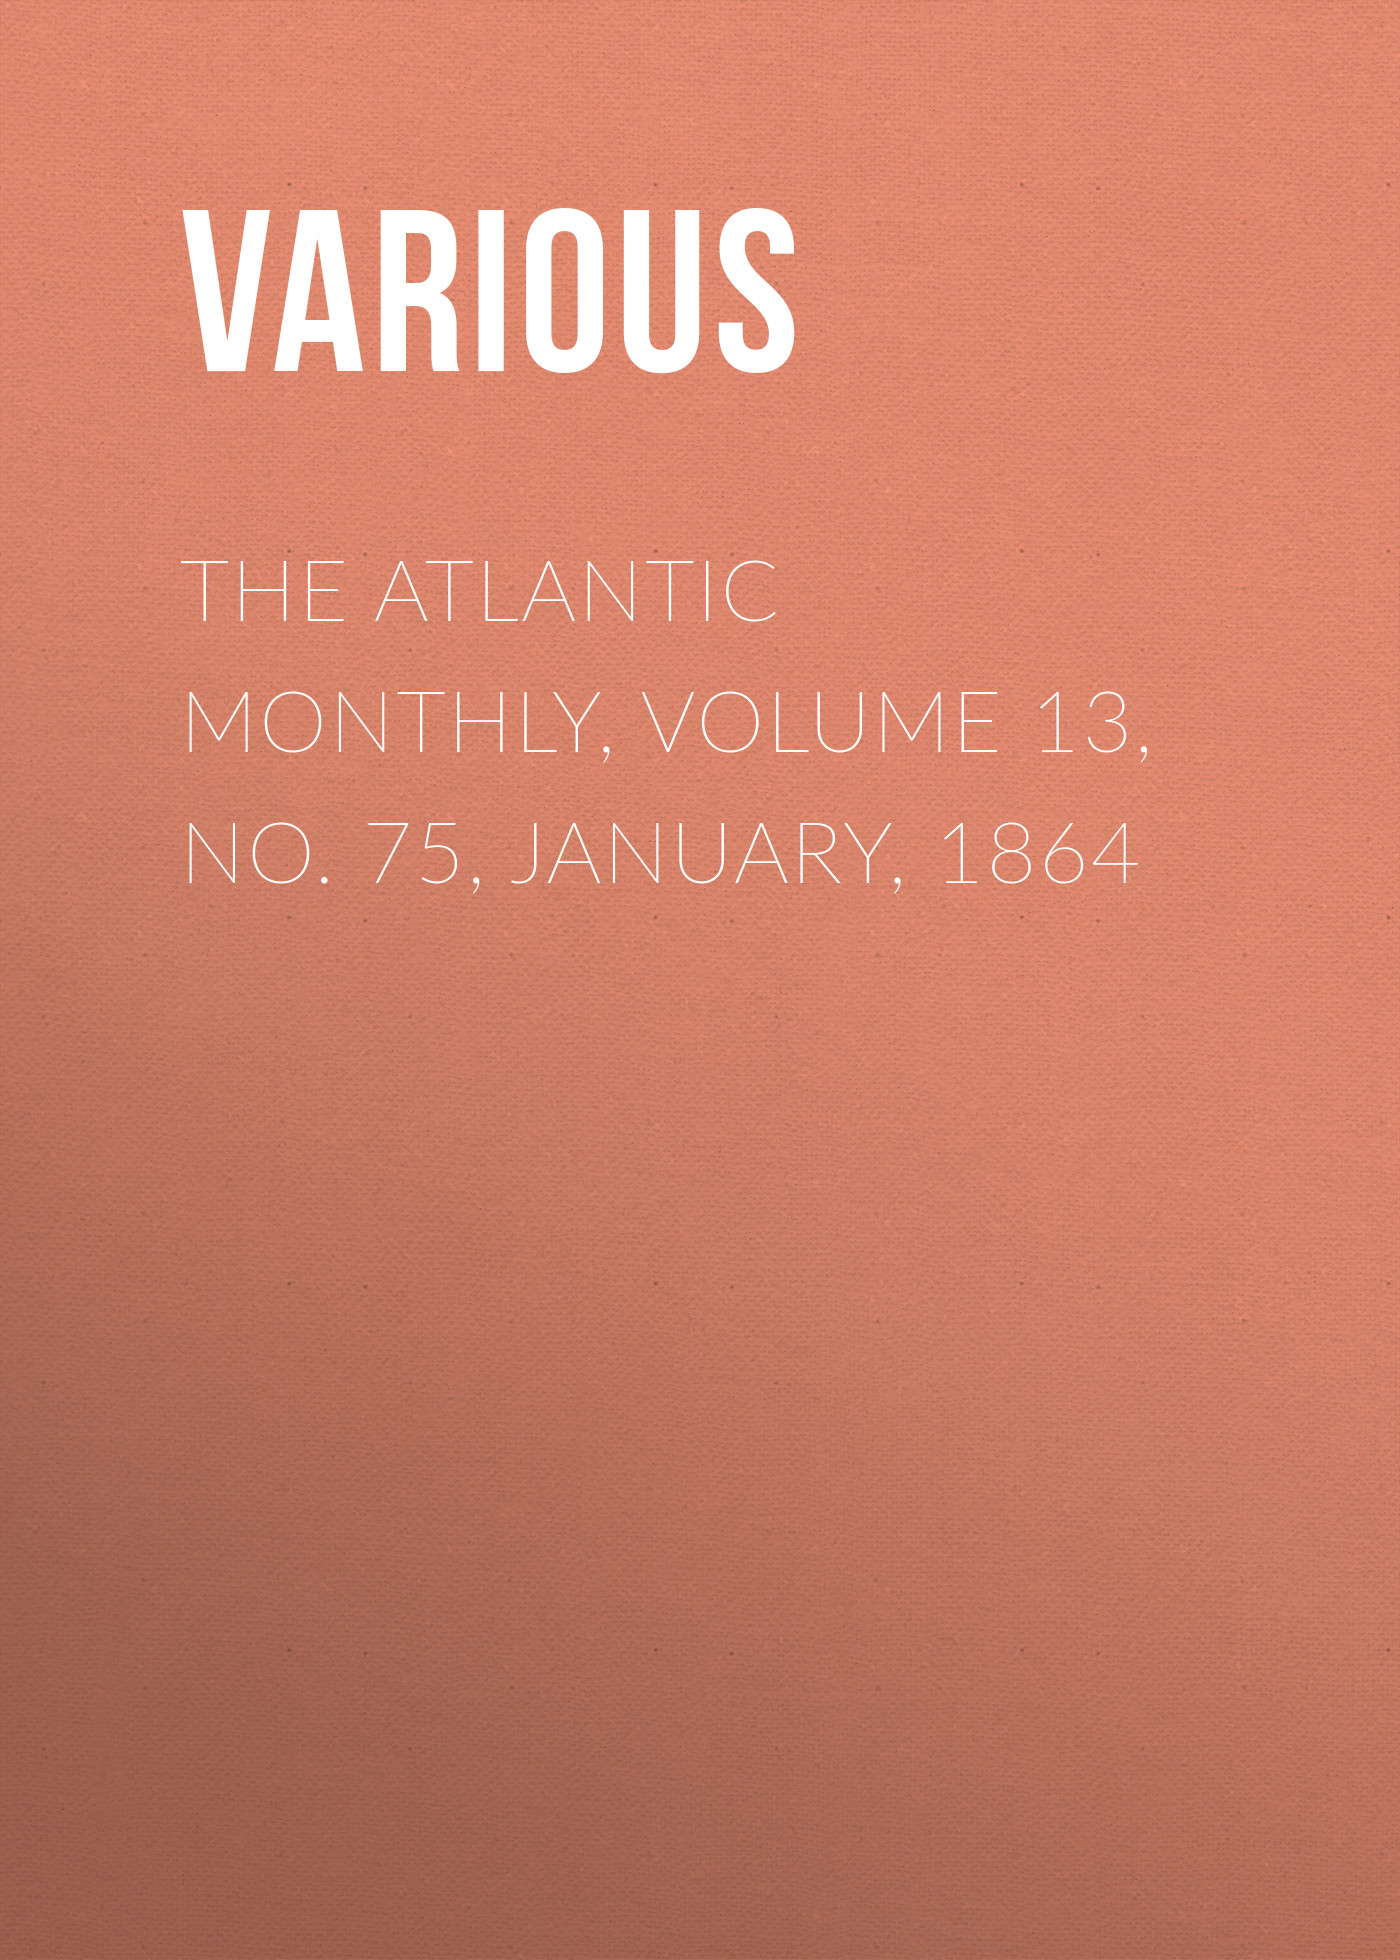 Various The Atlantic Monthly, Volume 13, No. 75, January, 1864